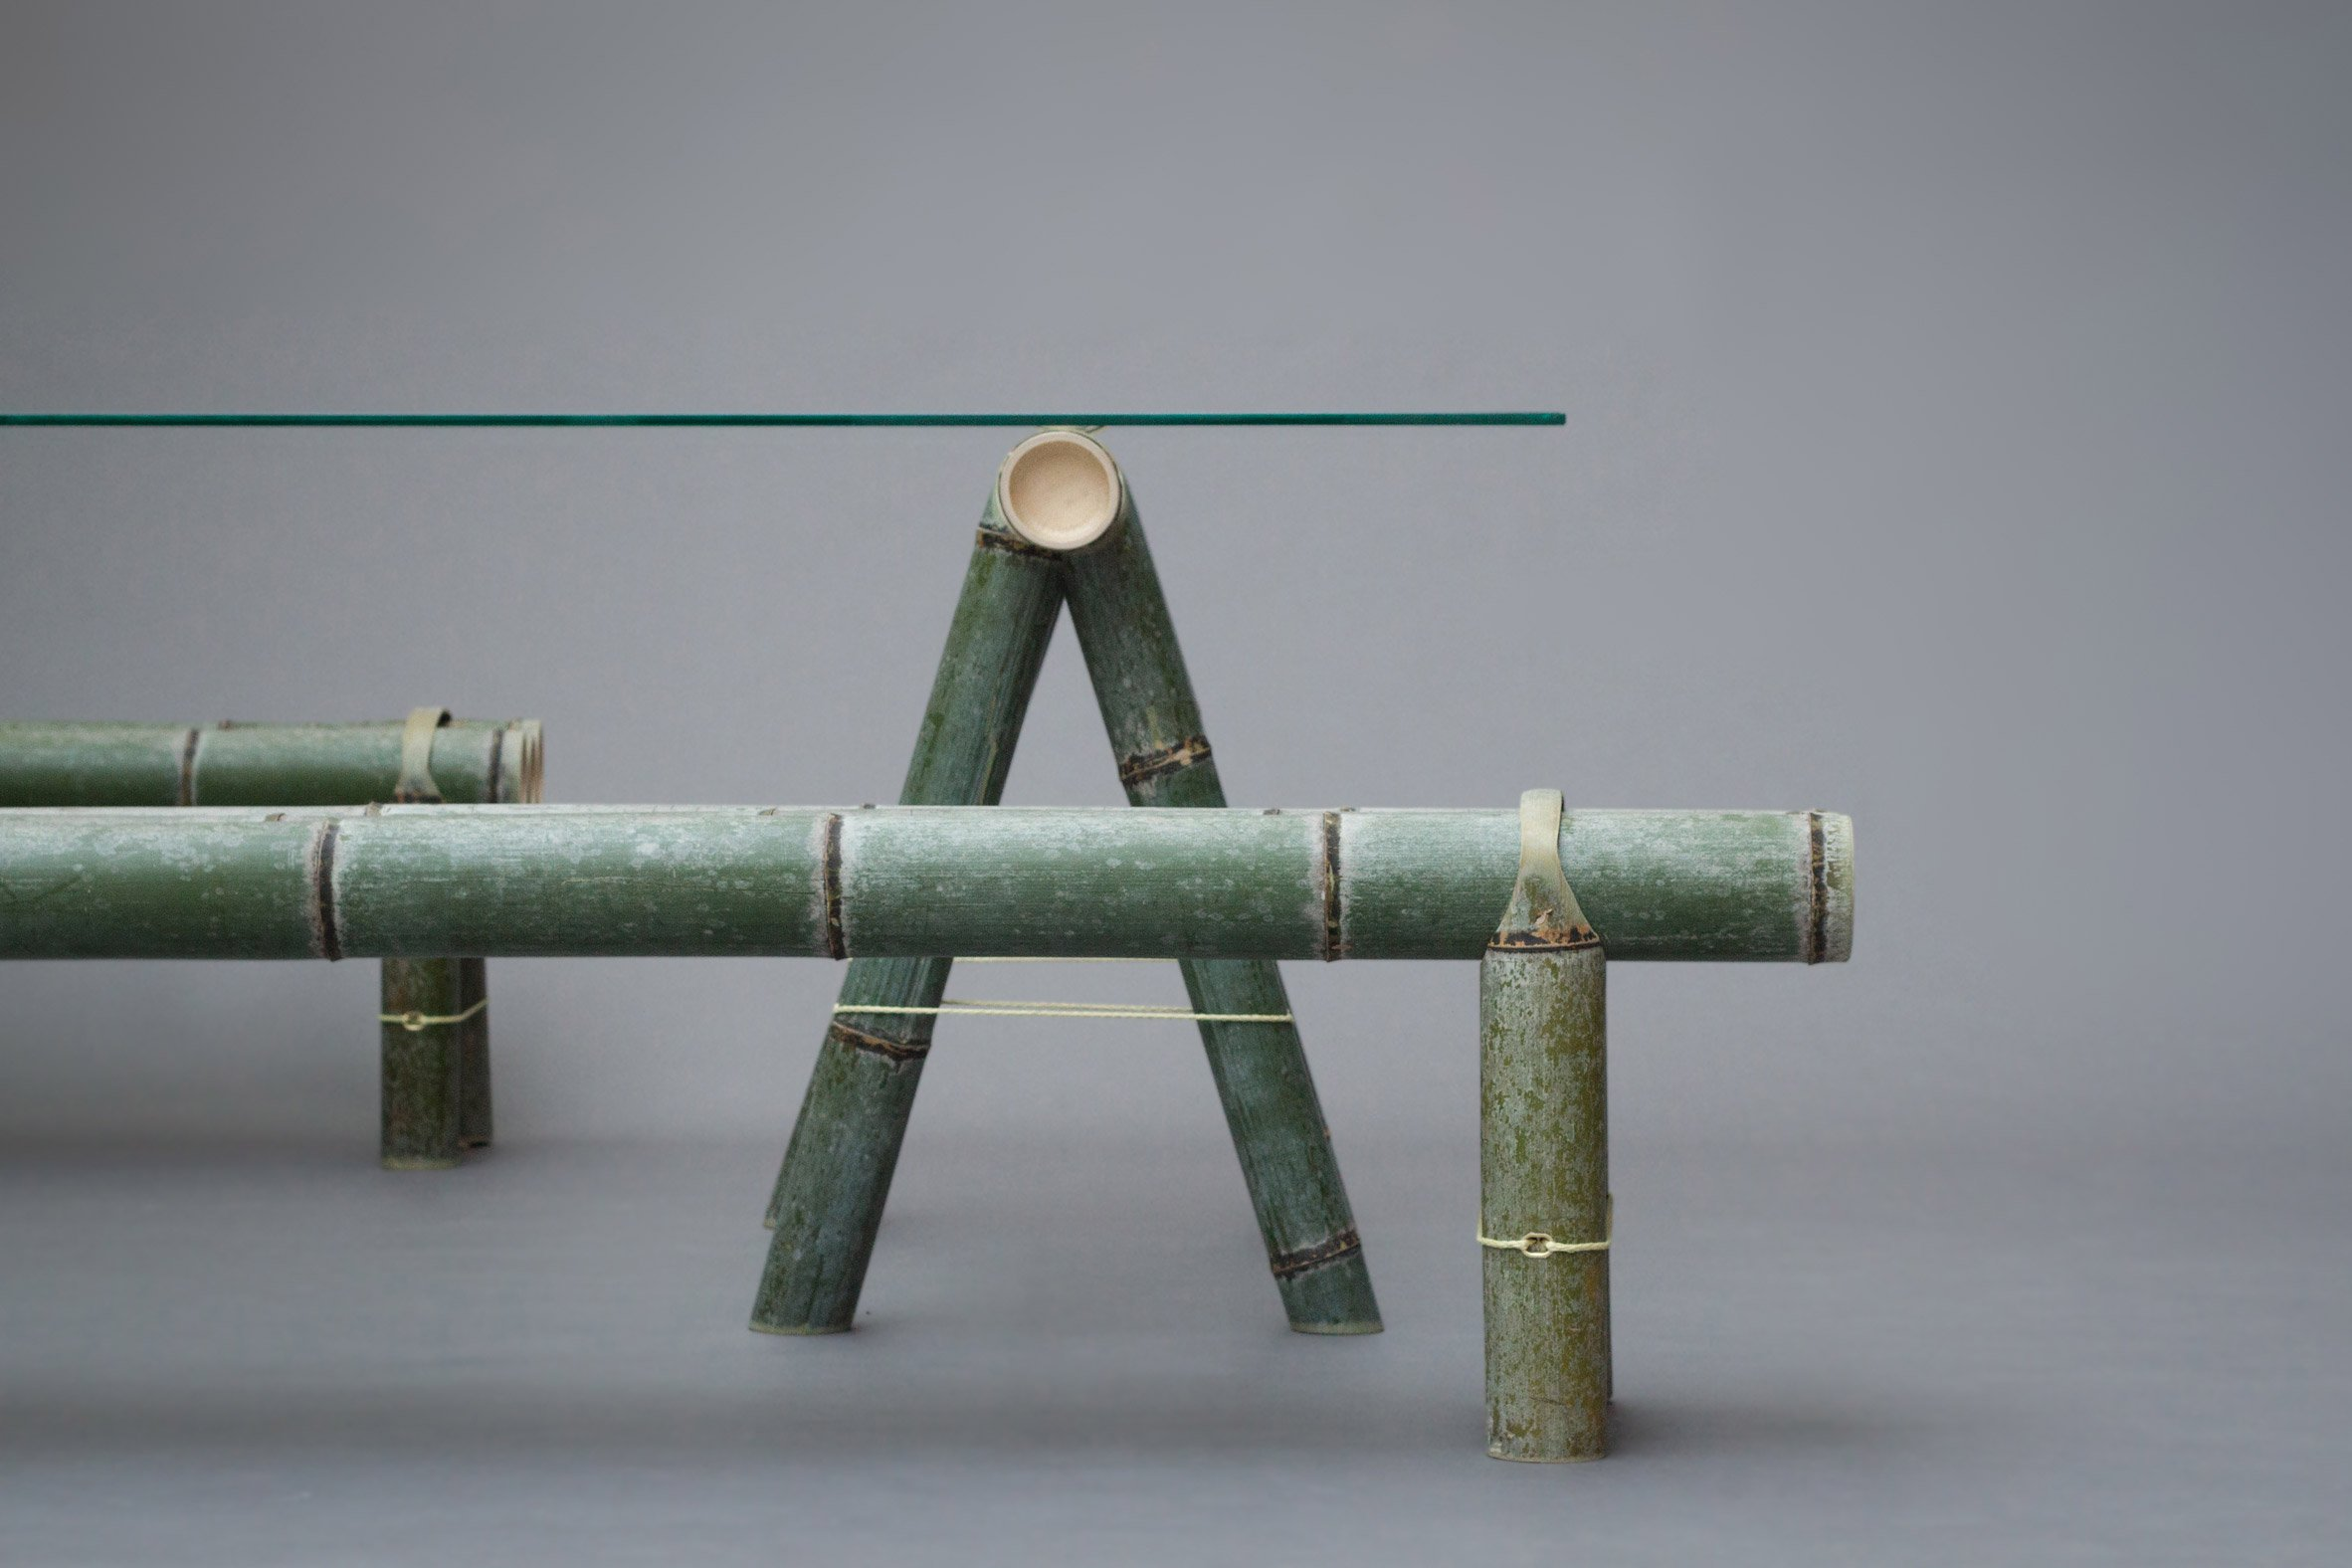 Bamboo Furniture Design Creative Dezeen Stefan Diezs Soba Bamboo Furniture Naturally Changes Colour Over Time